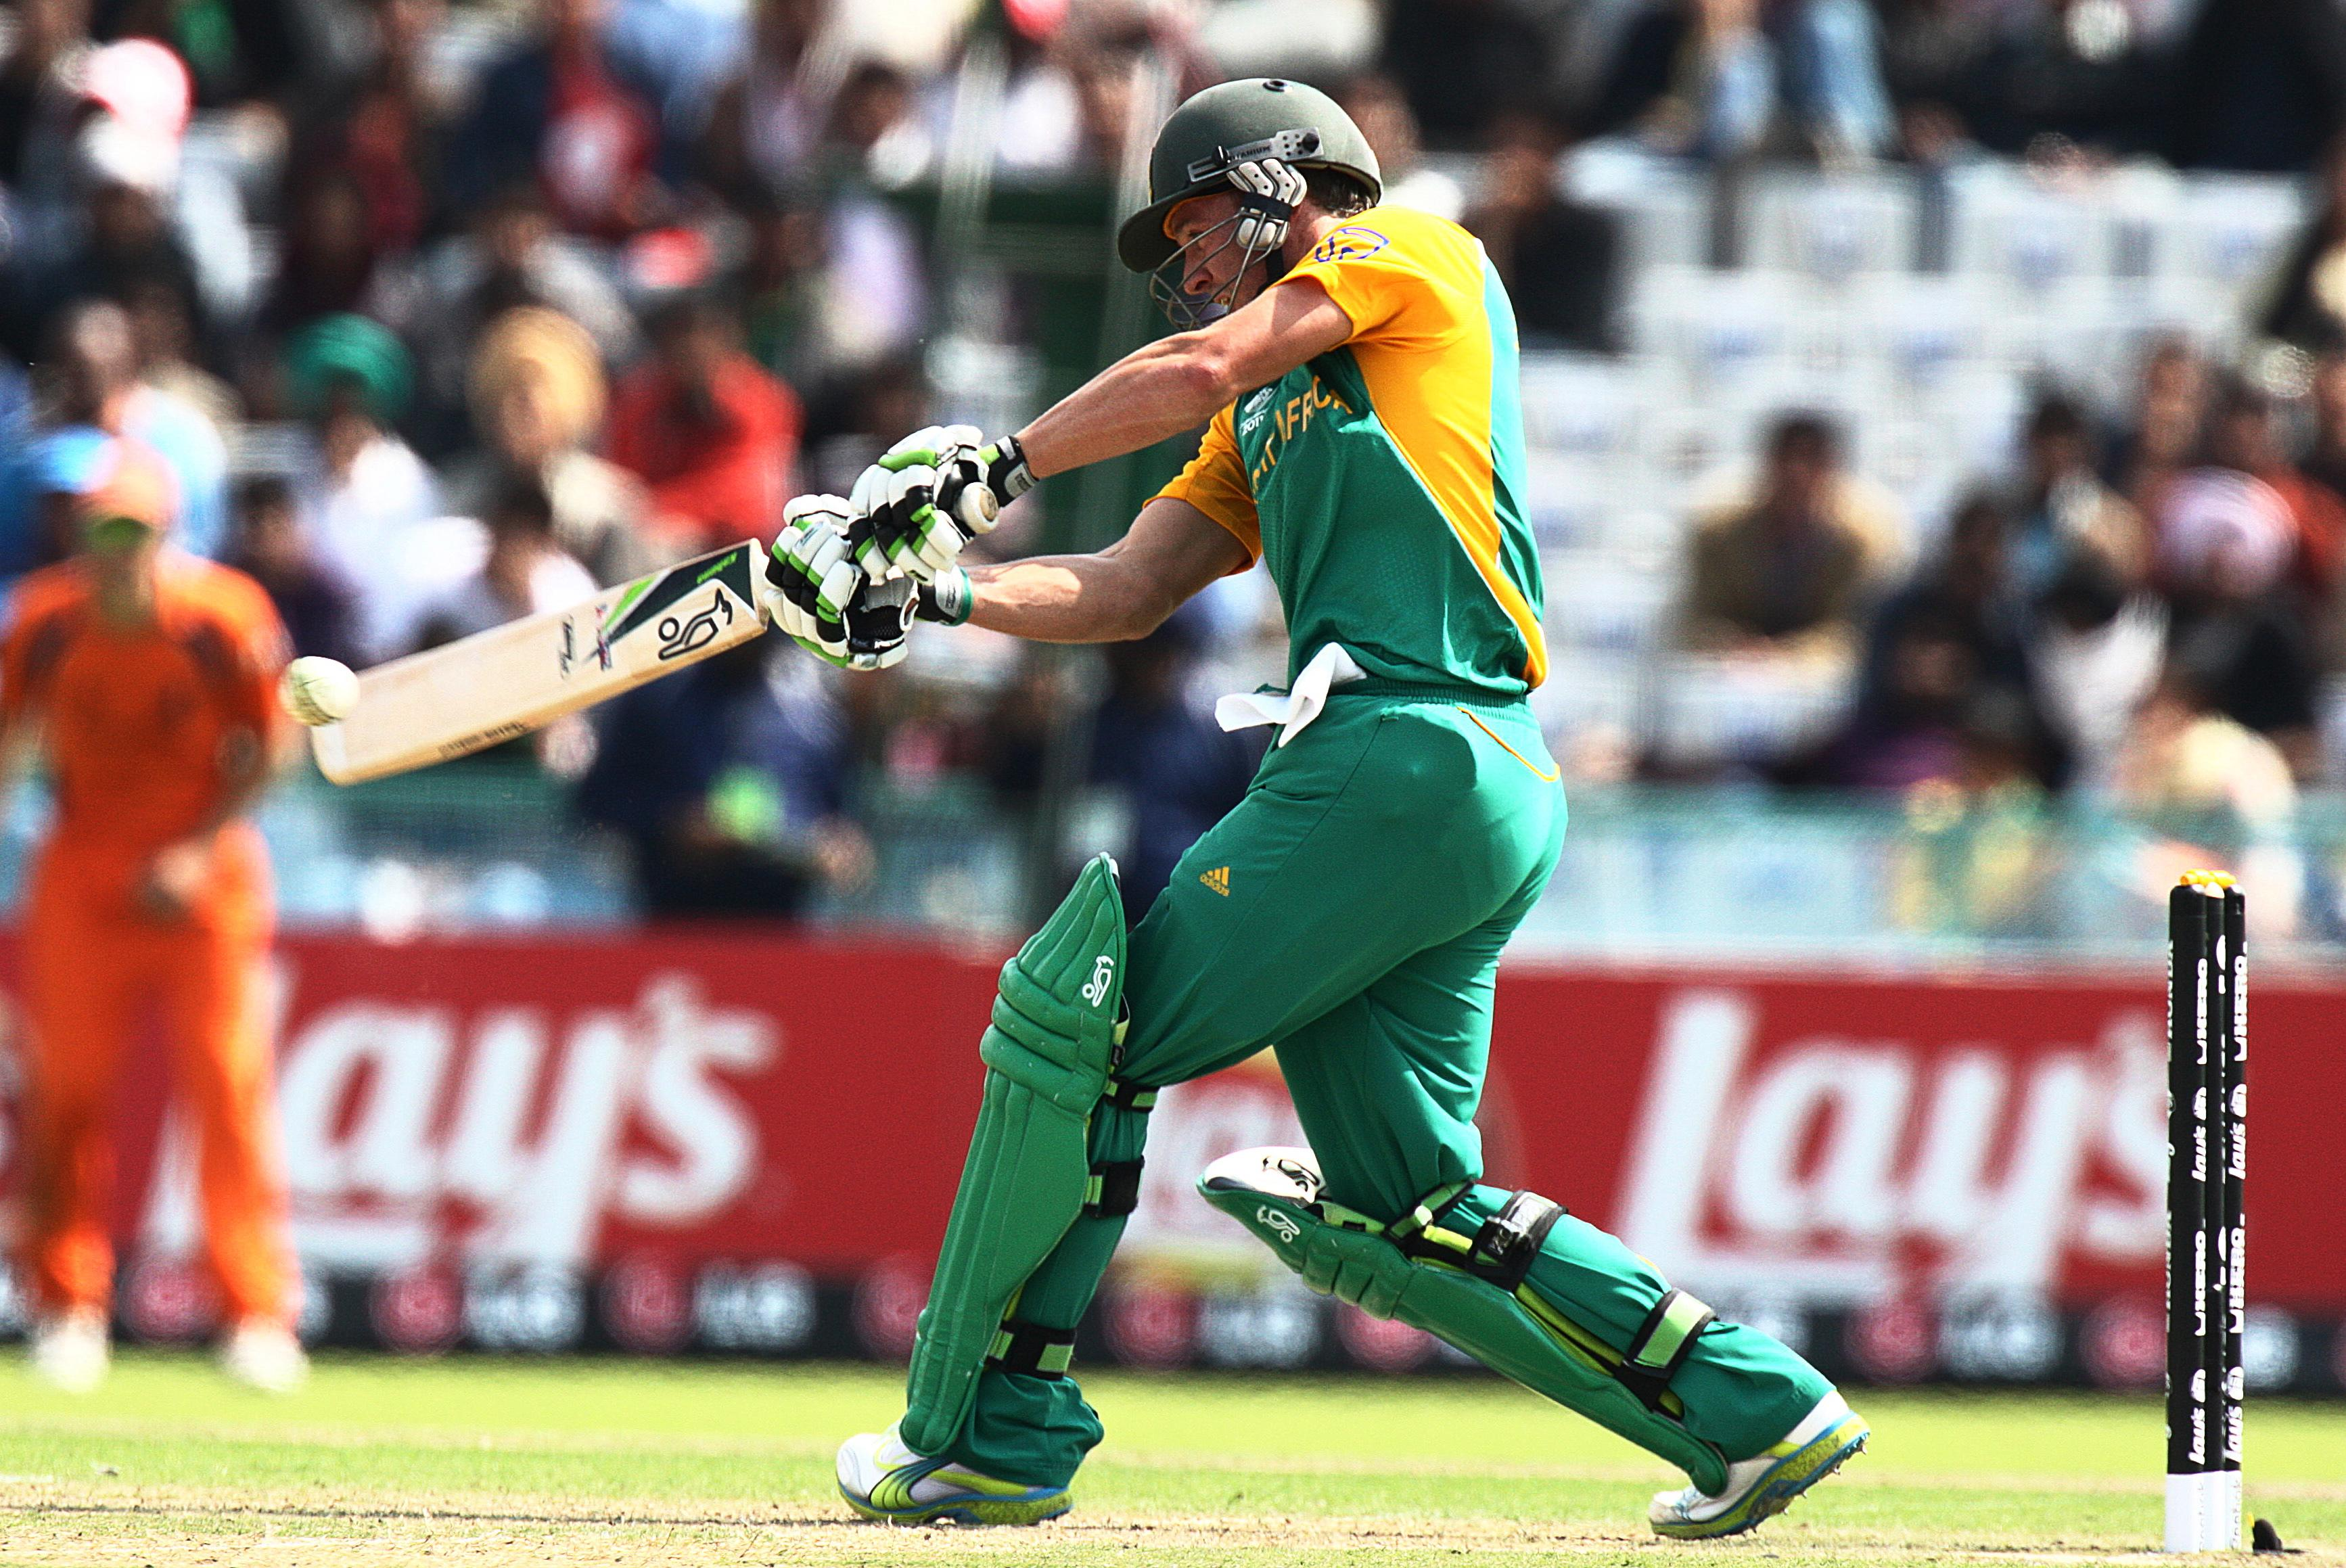 De Villiers sits fourth and second respectively on South Africa's all-time list of top run-scorers in Tests